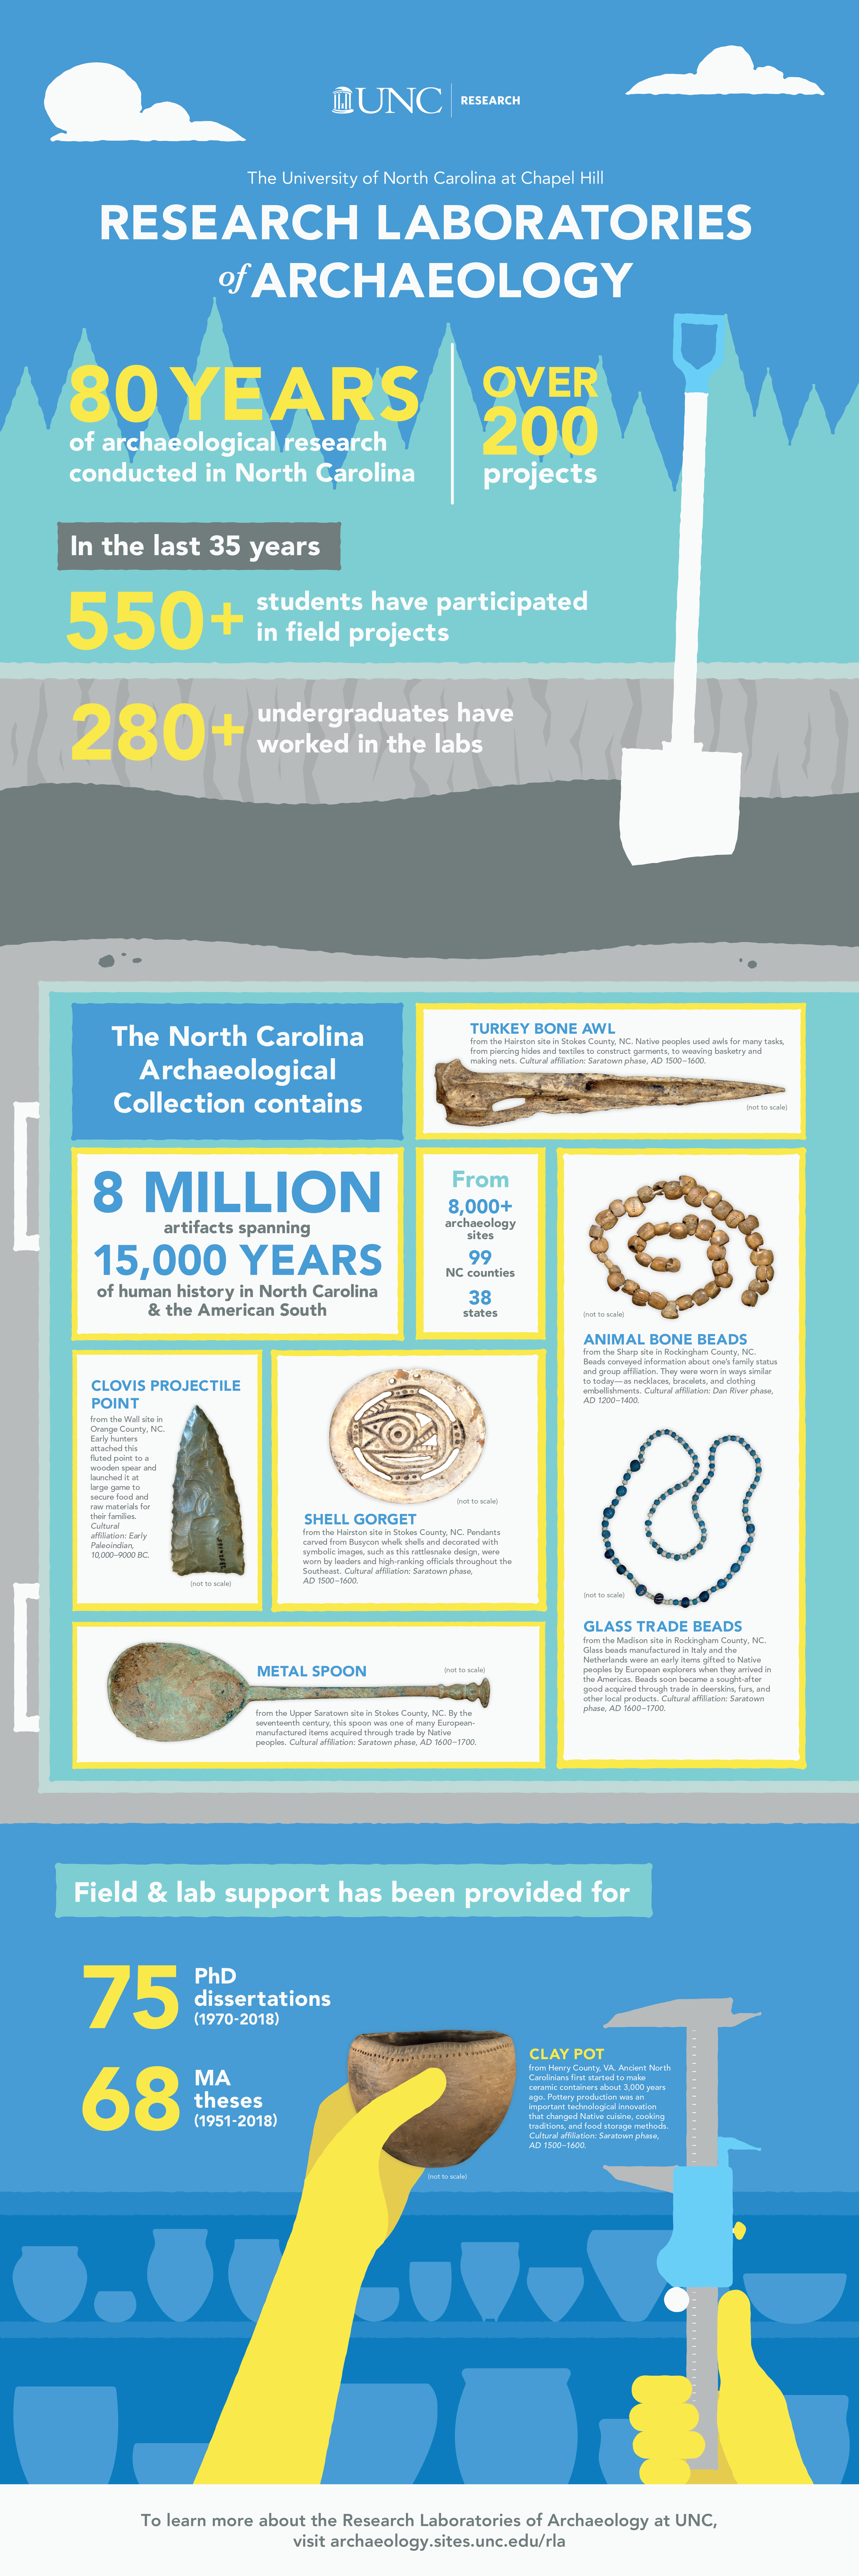 The Research Laboratories of Archaeology at UNC infographic. 80 years of archaeological research conducted in North Carolina. Over 200 projects. In the last 35 years, over 550 students have participated in field projects and over 28 undergraduates have worked in the labs. The North Carolina Archaeological Collection contains 8 million artifacts spanning 15,000 years of human history in North Carolina and the American South from over 8,000 archaeology sites, 99 North carolina counties, and 38 states. Visual of an old piece of bone, sharpened to a point. Turkey bone awl: from the Hairston site in Stokes County, NC. Native peoples used awls for many tasks, from piercing hides and textiles to construct garments, to weaving basketry and making nets. Cultural affiliation: Saratown phase, AD 1500–1600. Visual of beads on a string in a small swirl-circle. Animal bone bead: from the Sharp site in Rockingham County, NC. Beads conveyed information about one's family status and group affiliation. They were worn in ways similar to today—as necklaces, bracelets, and clothing embellishments. Cultural affiliation: Dan River phase, AD 1200–1400. Visual of a blue and white beaded necklace. Glass trade beads: from the Madison site in Rockingham County, NC. Glass beads manufactured in Italy and the Netherlands were an early items gifted to Native peoples by European explorers when they arrived in the Americas. Beads soon became a sought-after good acquired through trade in deerskins, furs, and other local products. Cultural affiliation: Saratown phase, AD 1600–1700. Visual of a gray rock, sharpened to a point with a small notch shaved out of it. Clovis projectile point: from the Wall site in Orange County, NC. Early hunters attached this fluted point to a wooden spear and launched it at large game to secure food and raw materials for their families. Cultural affiliation: Early Paleoindian, 10,000–9000 BC. Visual of a round, white bead, with an ornate design etched into it. Shell gorget: from the Hairston site in Stokes County, NC. Pendants carved from Busycon whelk shells and decorated with symbolic images, such as this rattlesnake design, were worn by leaders and high-ranking officials throughout the Southeast. Cultural affiliation: Saratown phase, AD 1500–1600. Visual of a discolored, metal spoon. Metal spoon: from the Upper Saratown site in Stokes County, NC. By the seventeenth century, this spoon was one of many European- manufactured items acquired through trade by Native peoples. Cultural affiliation: Saratown phase, AD 1600–1700. Field and lab support has been provided for 25 PhD dissertations (1970-2018) and 68 MA theses (1951-2018). Visual of one hand holding an old, clay pot, while the other hand measures it. Clay pot: from Henry County, VA. Ancient North Carolinians f irst started to make ceramic containers about 3,000 years ago. Pottery production was an important technological innovation that changed Native cuisine, cooking traditions, and food storage methods. Cultural affiliation: Saratown phase, AD 1500–1600. To learn more about the Research Laboratories of Archaeology at UNC, visit archaeology.sites.unc.edu/rla.